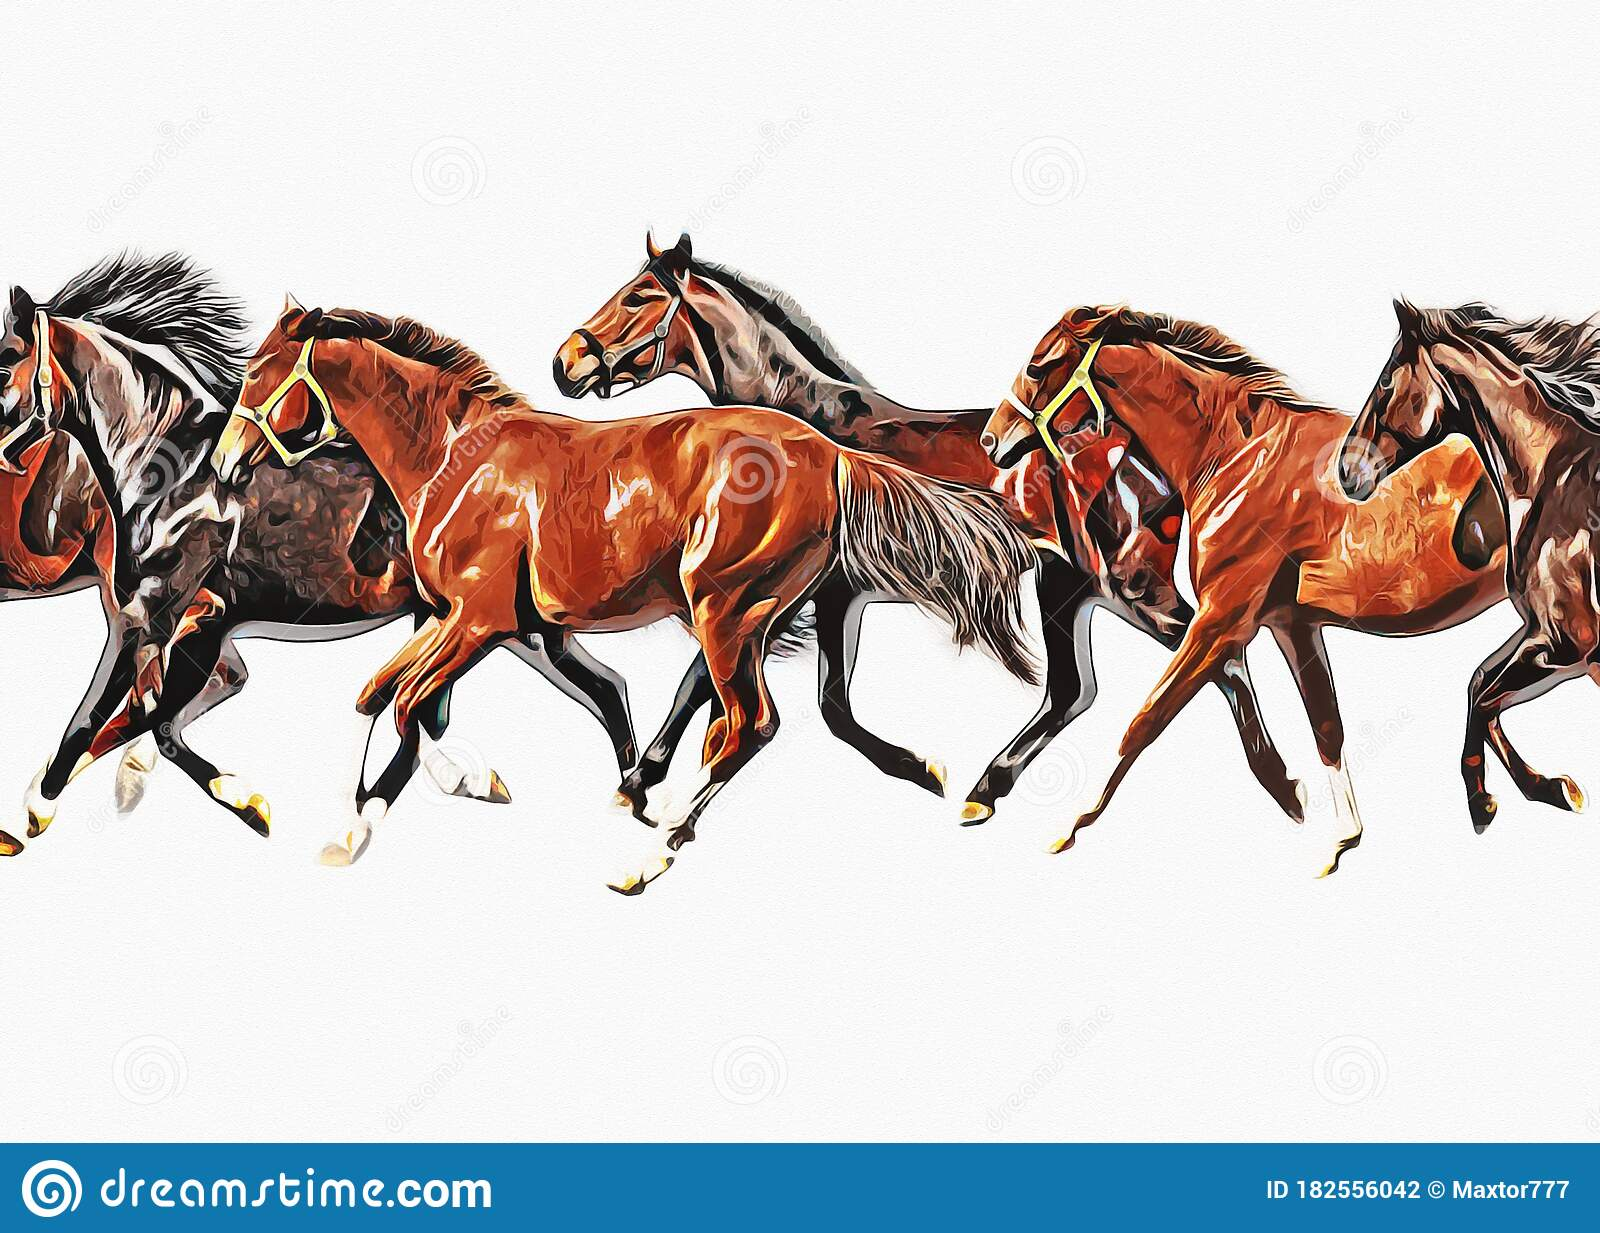 Colorful Horse Art Illustration Grunge Painting Stock Illustration Illustration Of Pencil Painting 182556042